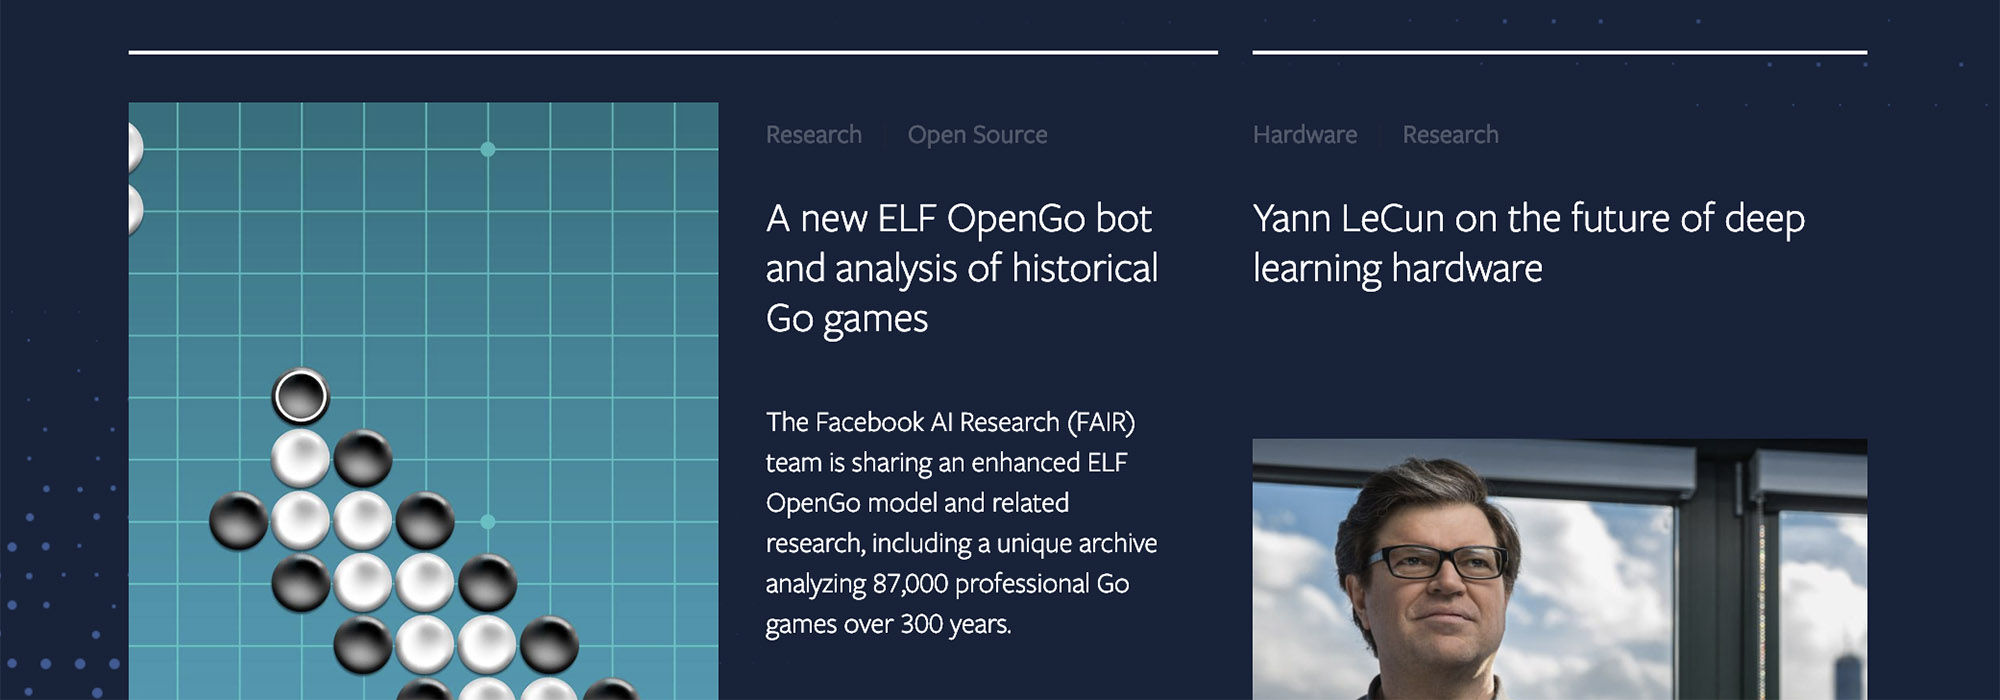 AI blog roundup of posts on Facebook's new AI blog